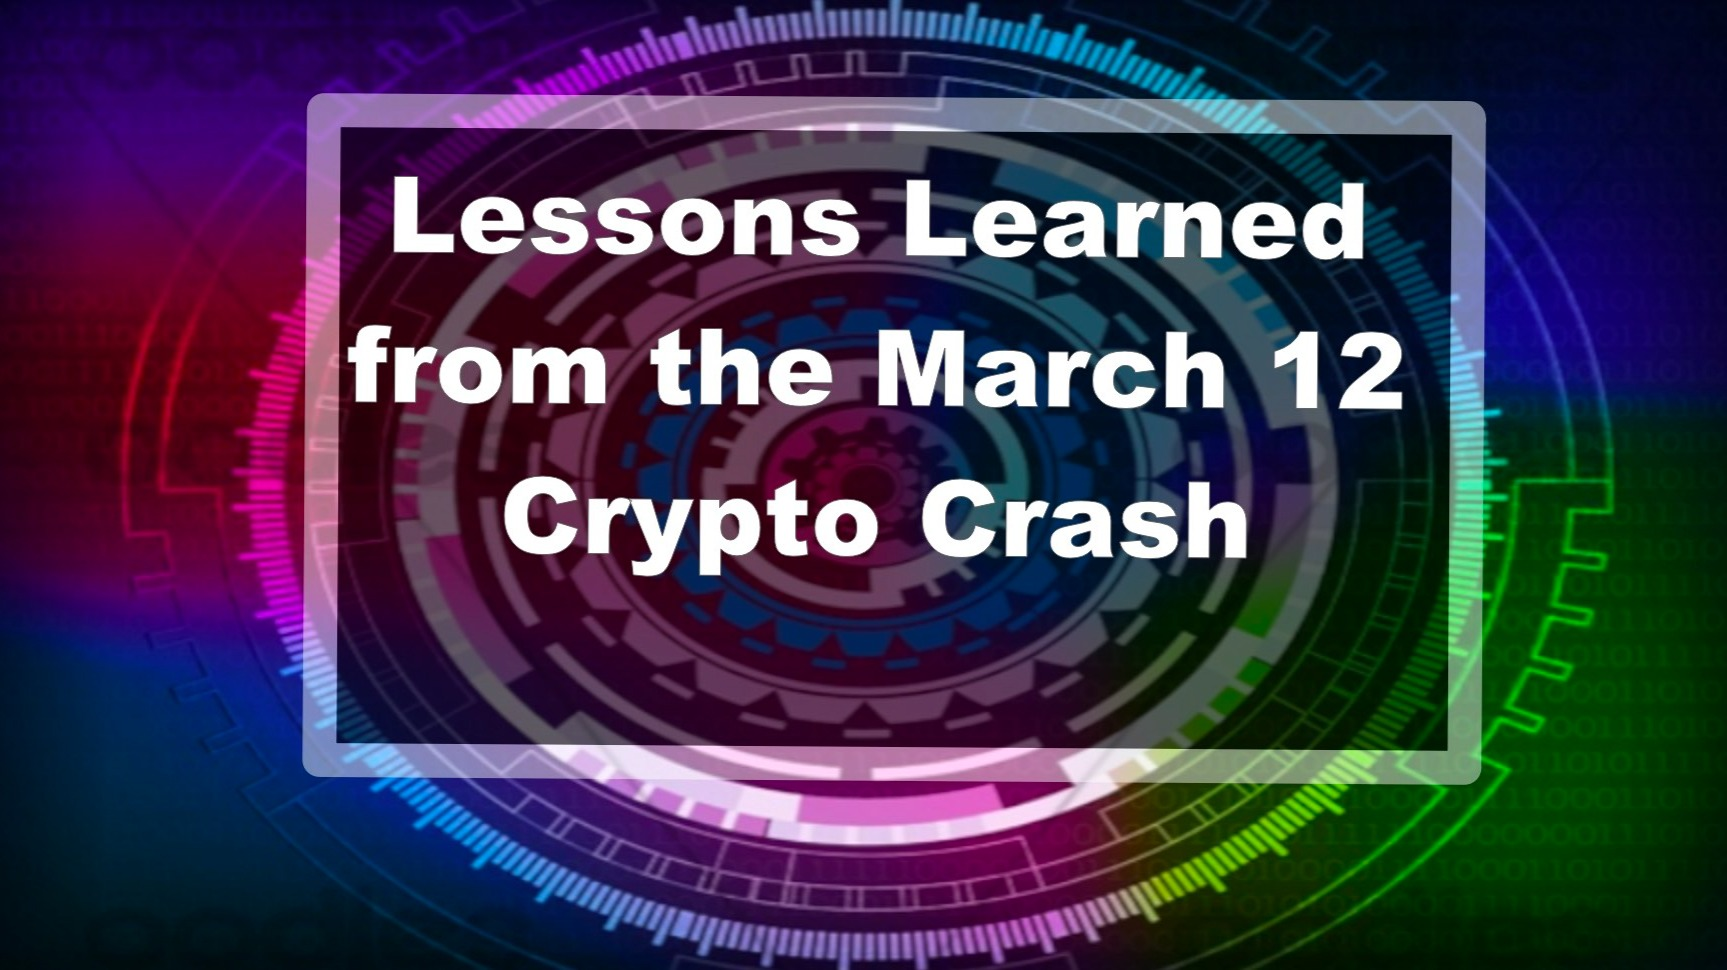 Lessons Learned from the March 12 Crypto Crash